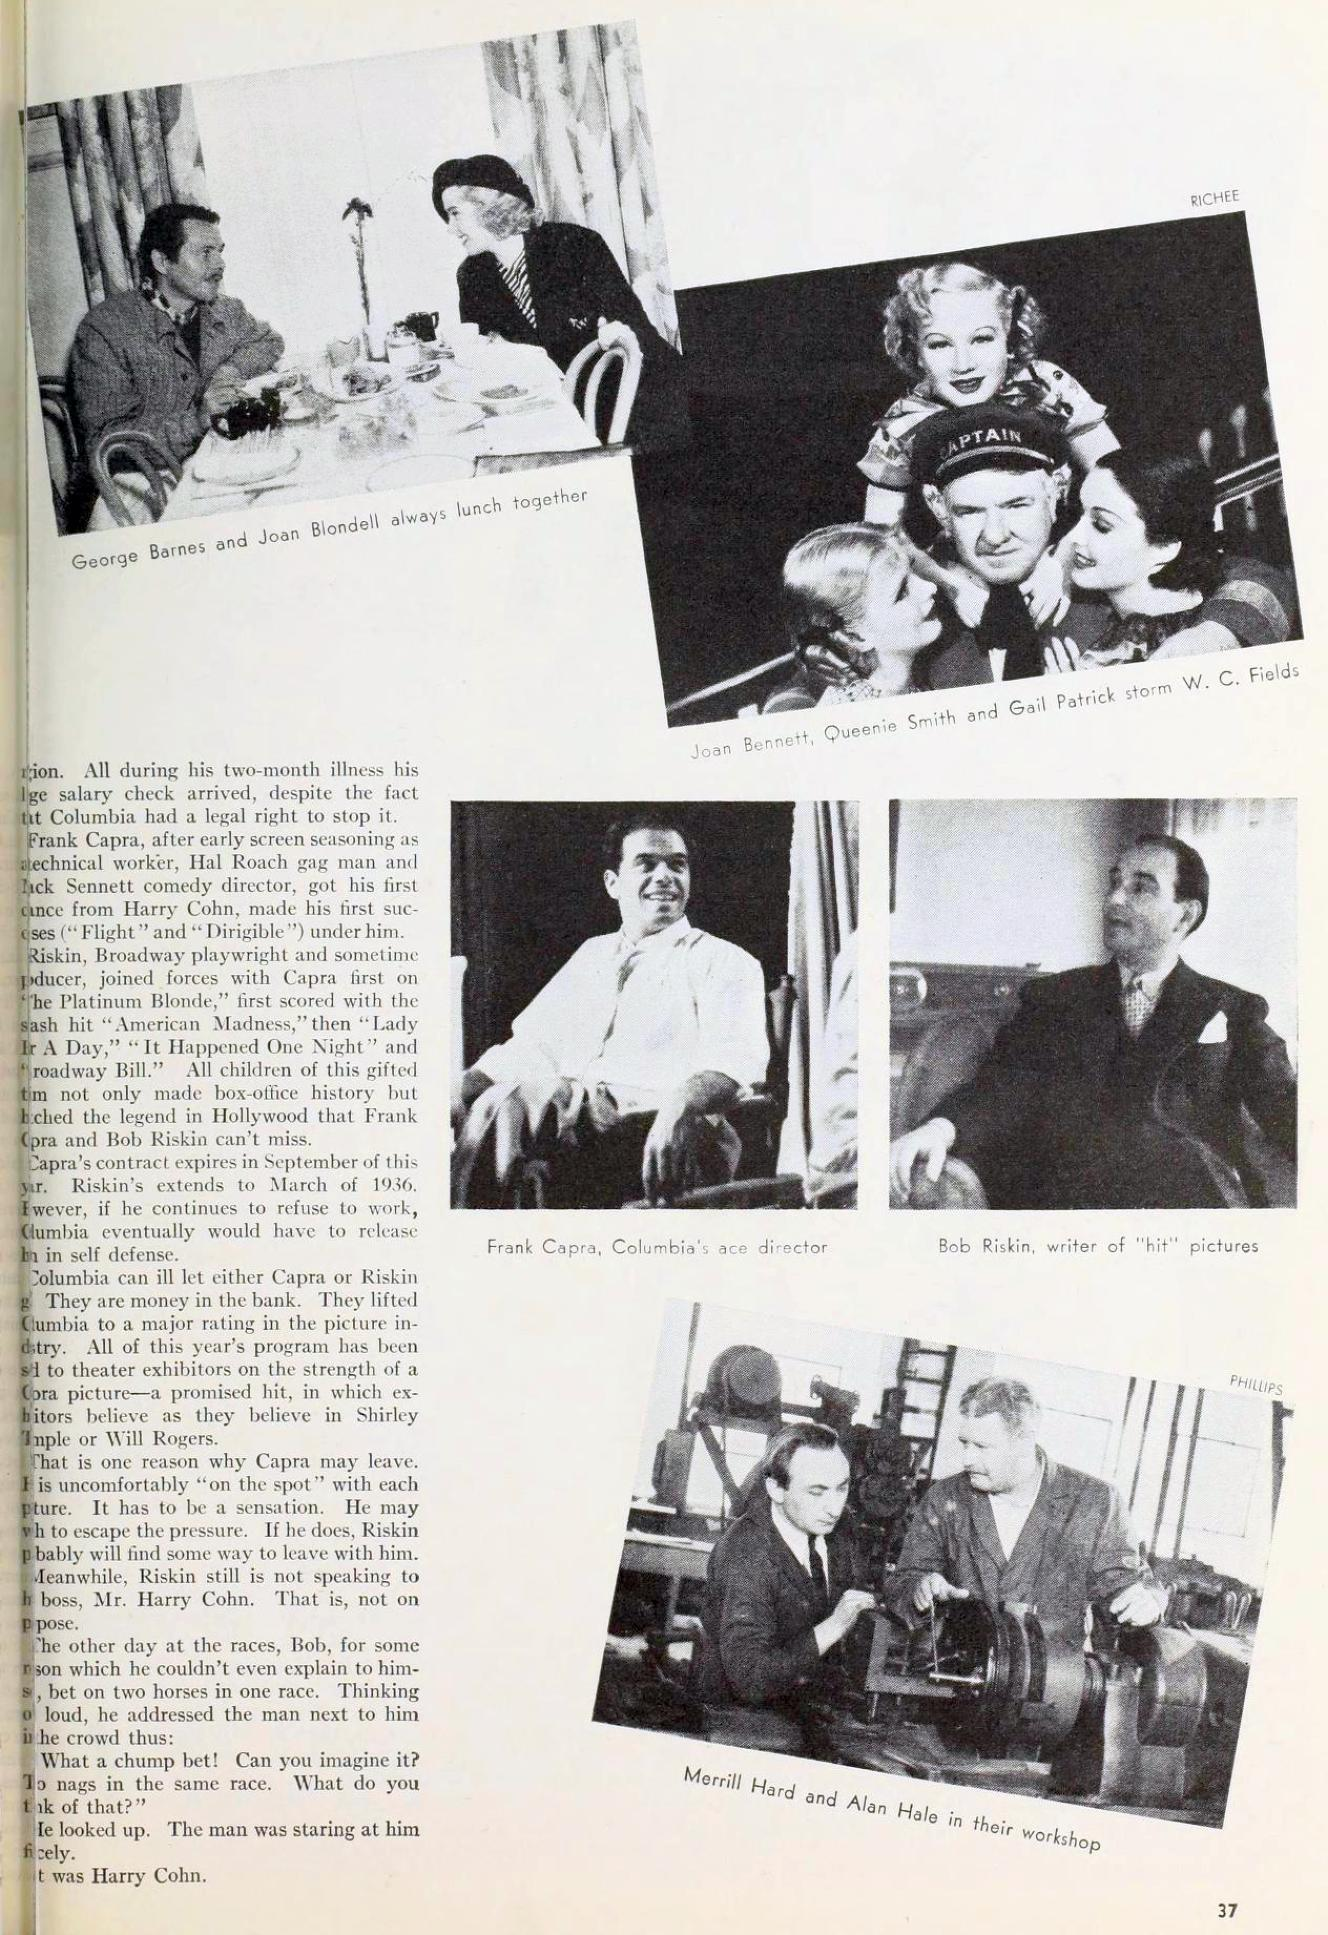 photoplay april 1935ca